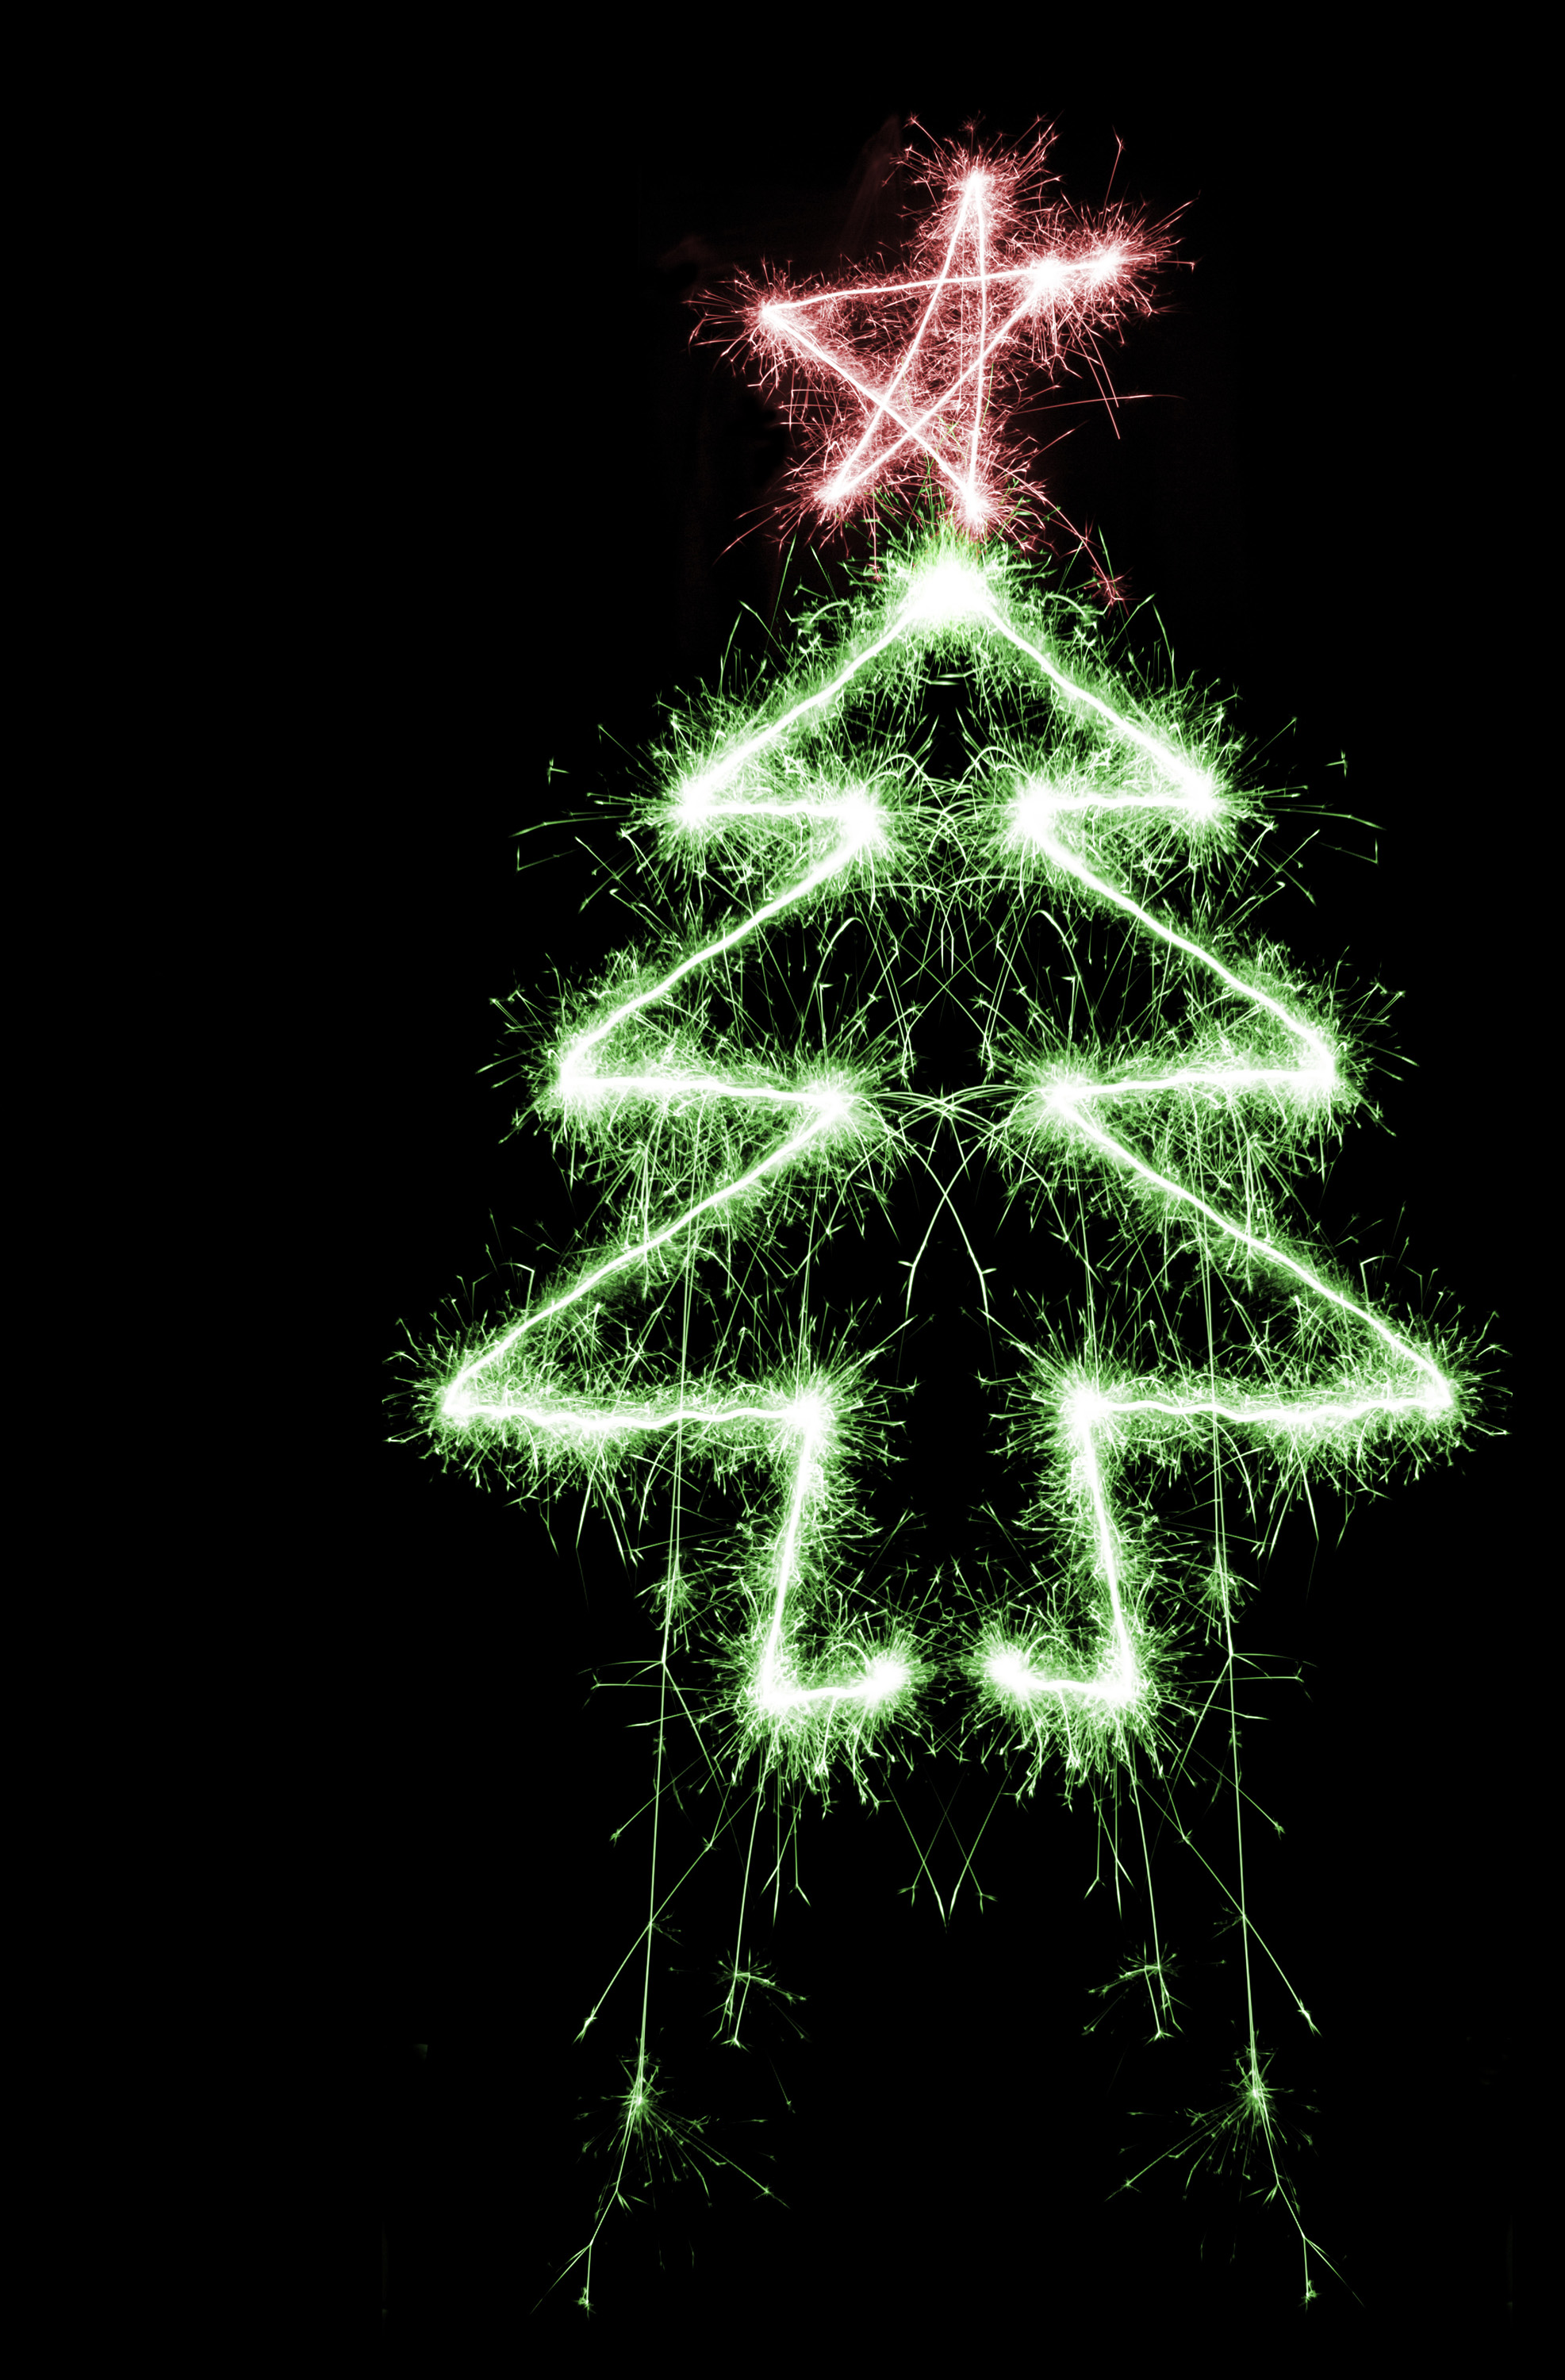 a green and red coloured christmas tree and star shape drawn with a sparkler